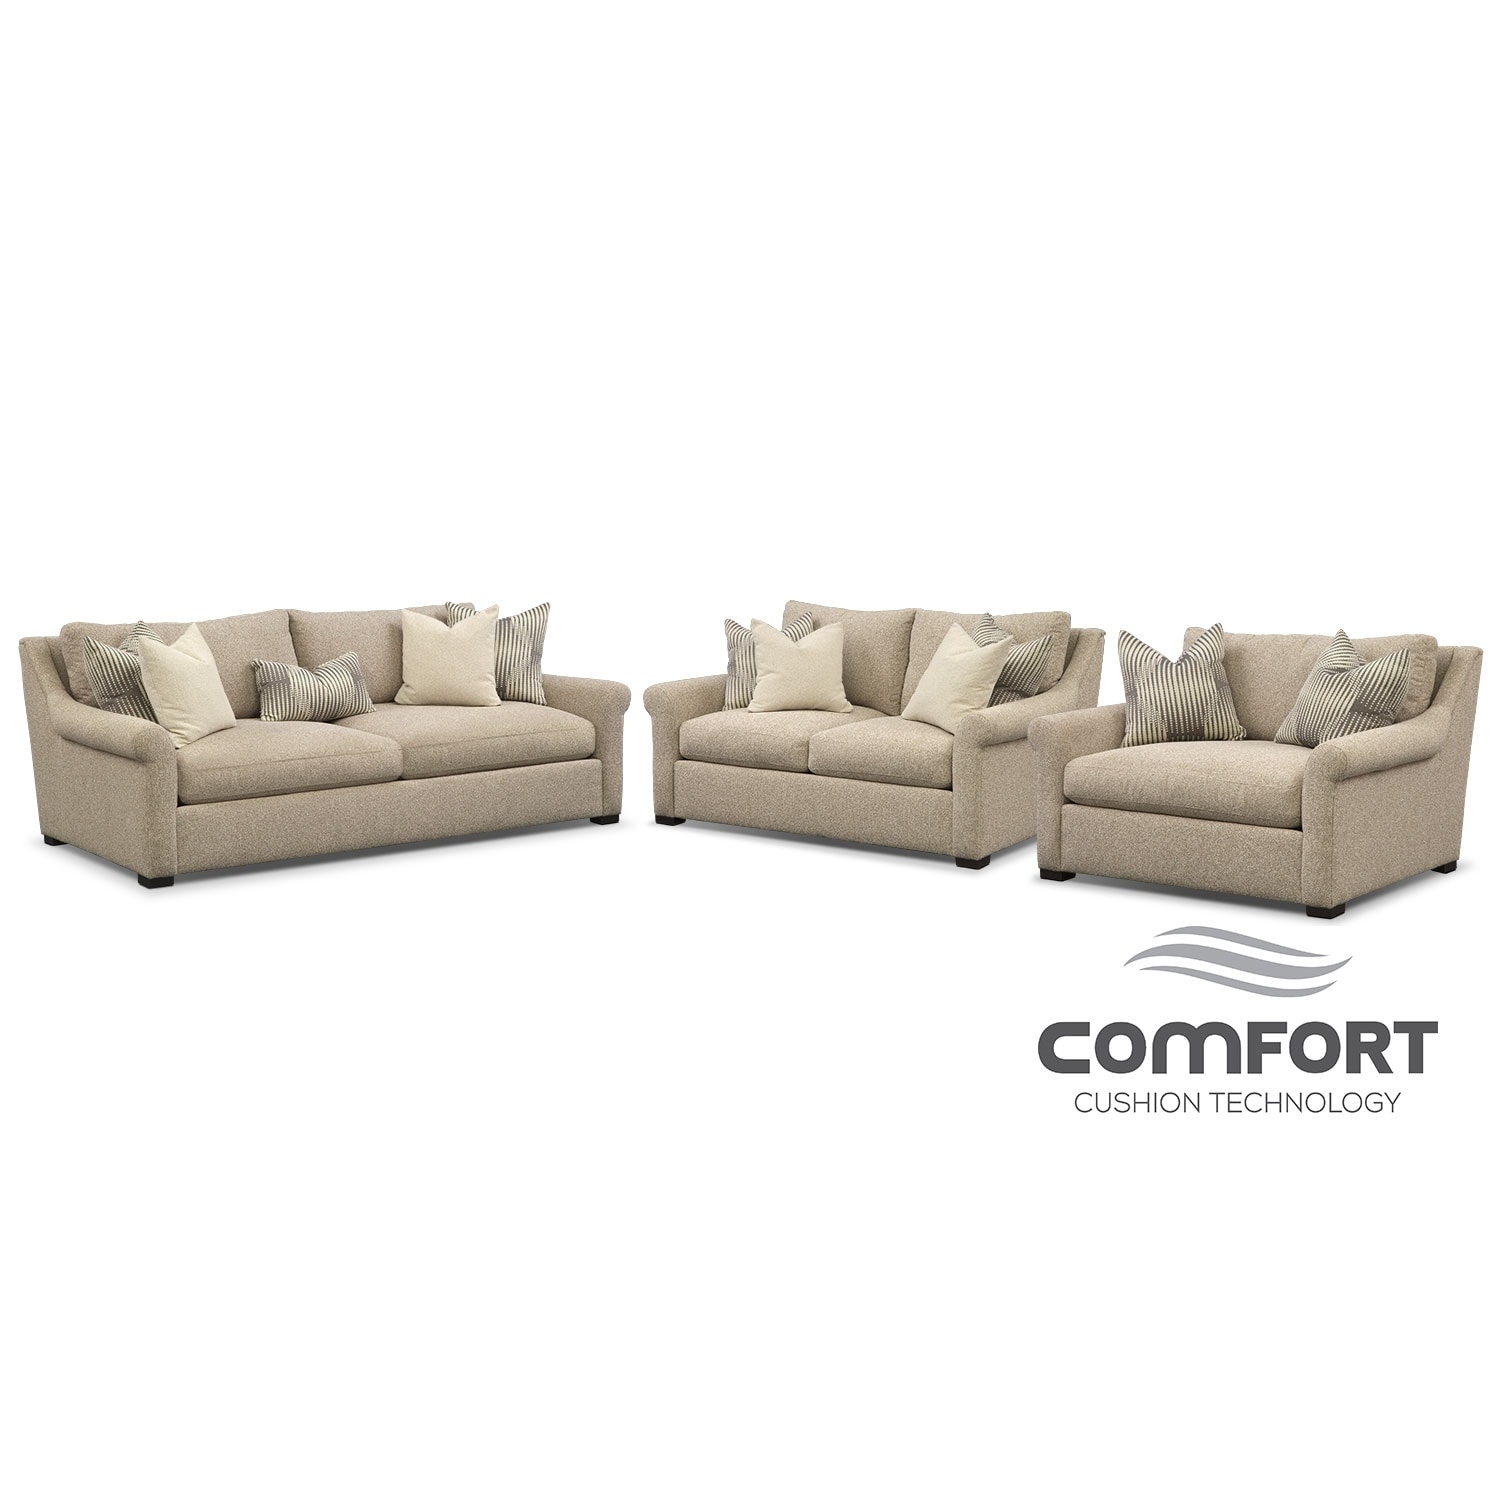 Robertson Comfort Sofa, Loveseat and Chair and a Half Set - Beige ...